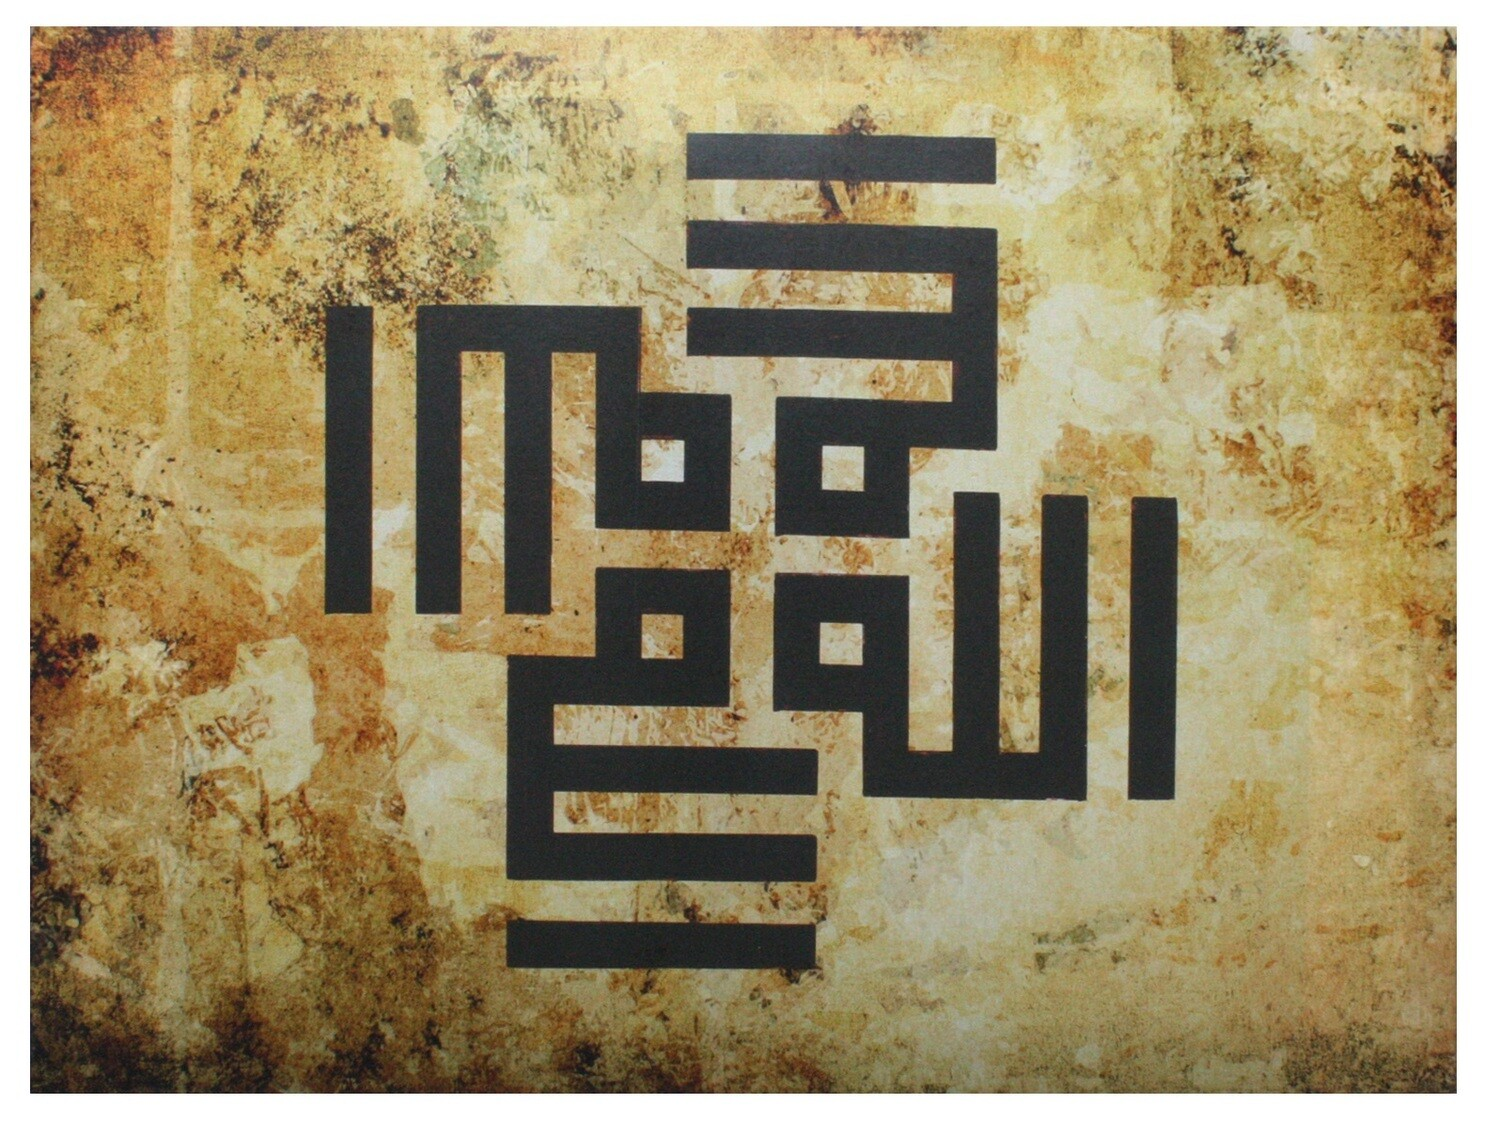 Allah Kufic Rotated Abstract Yellow/Gold Design Original Giclée Canvas